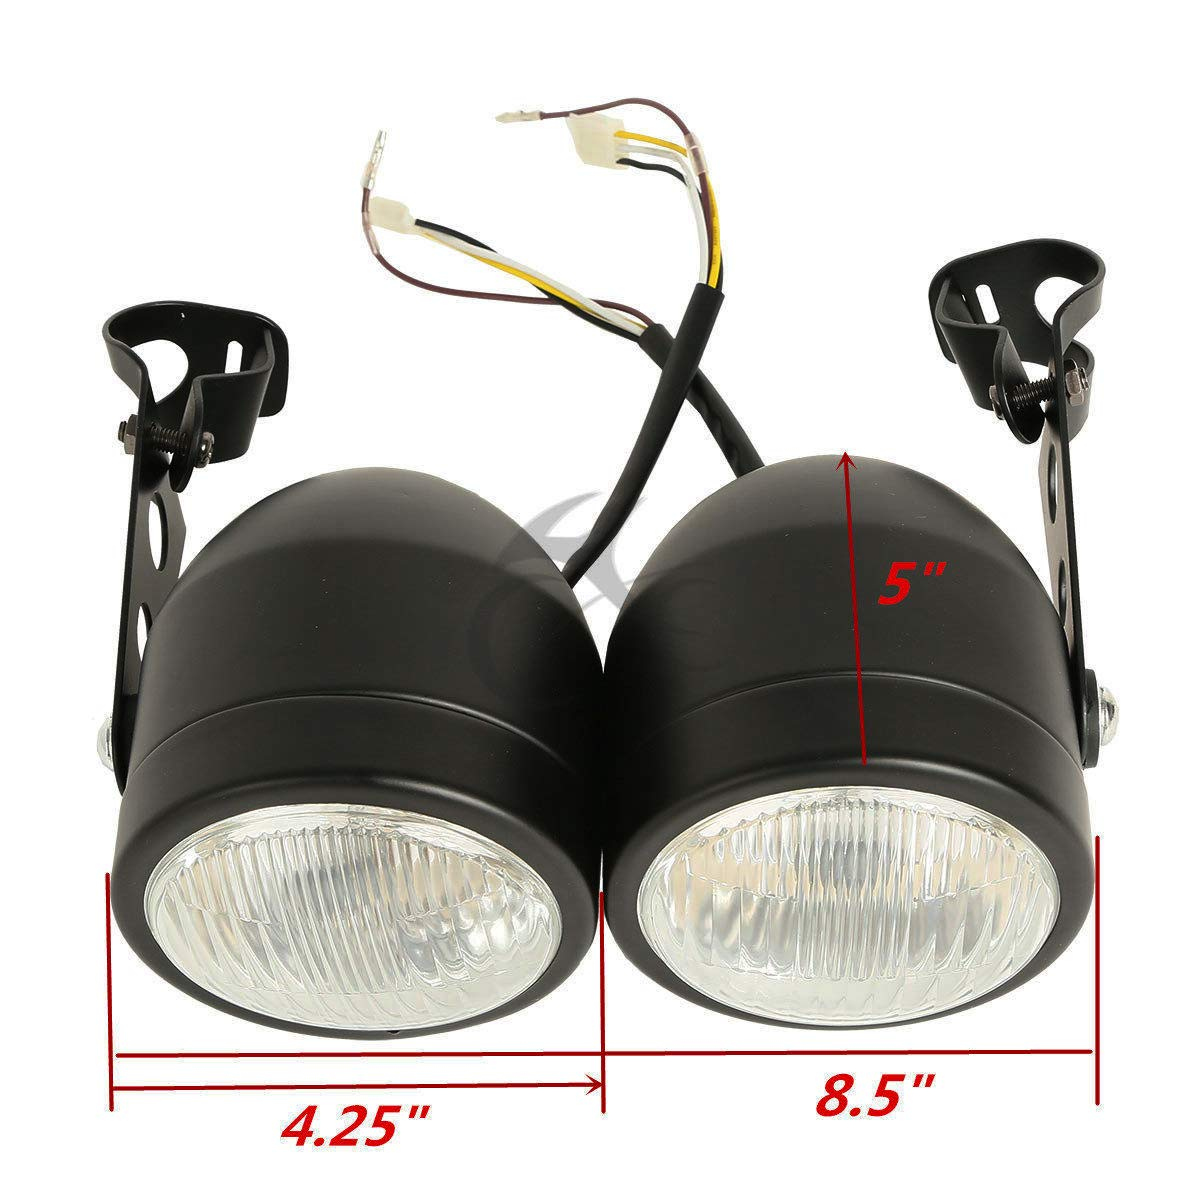 XFMT Double Dual Lamp Front Headlight W//Bracket Compatible with Street Fighter Naked Motorcycles